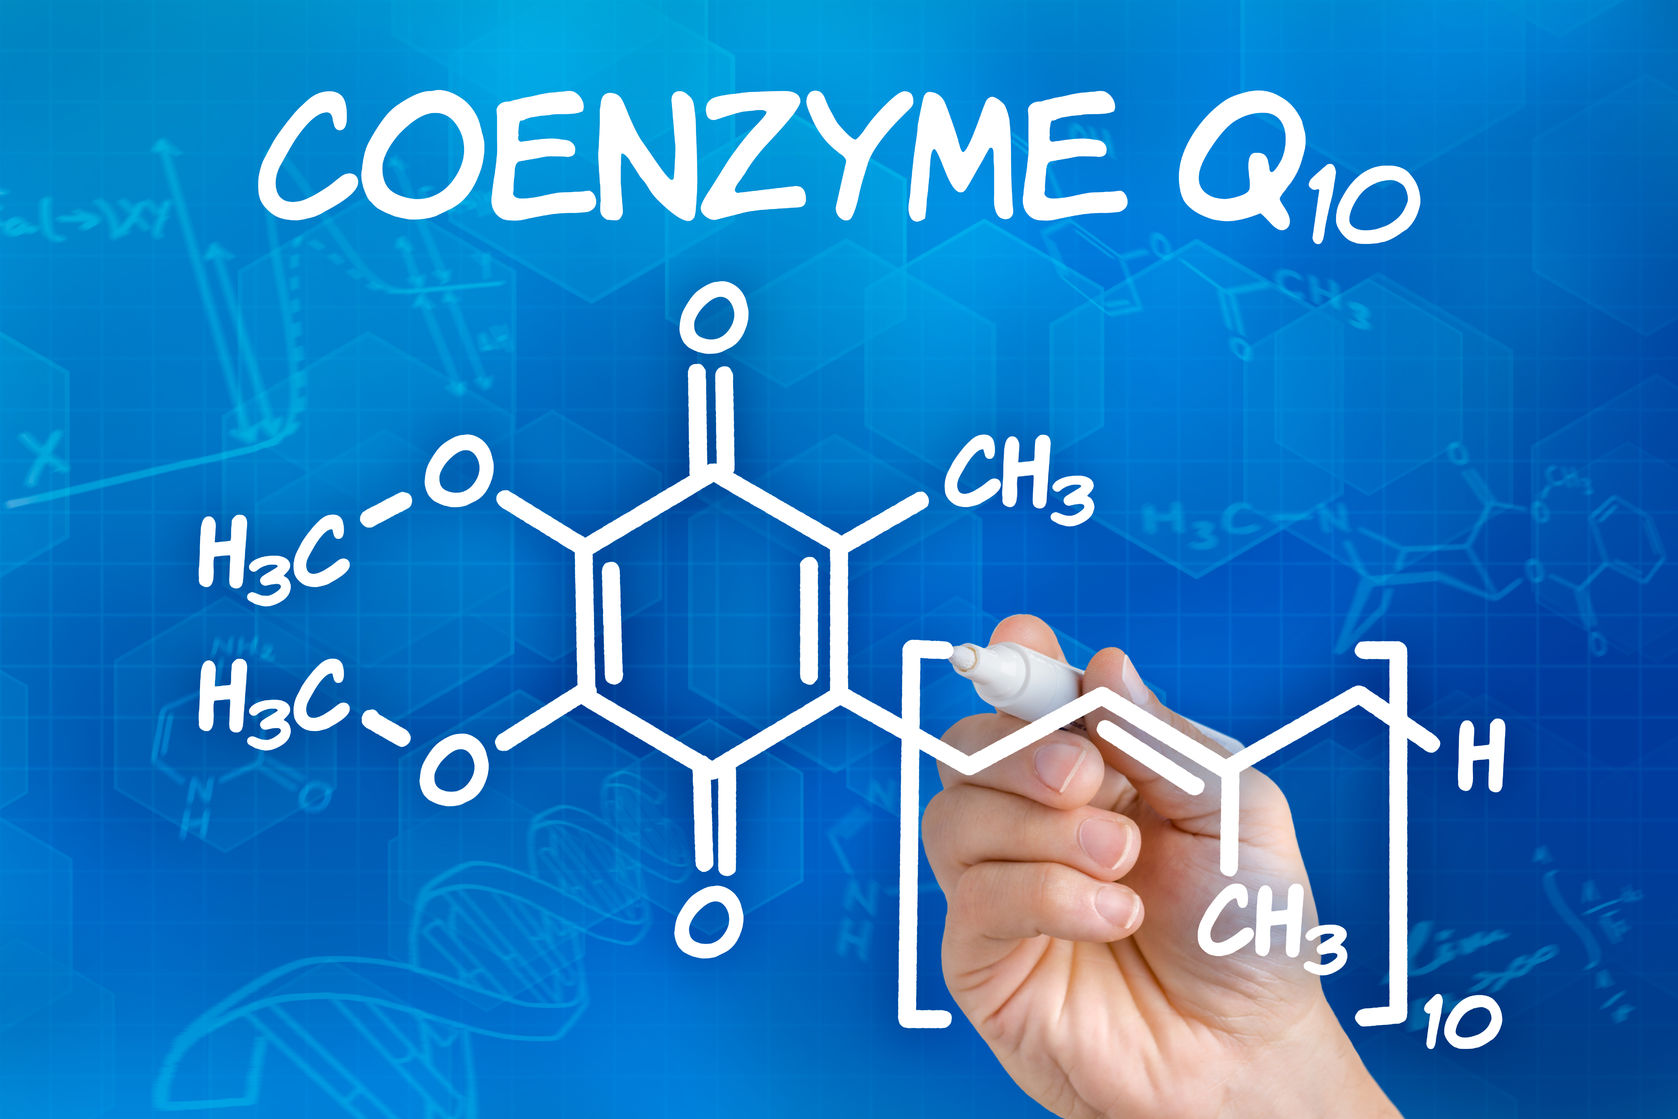 coenzyme Q10 increases levels of your body's antioxidants